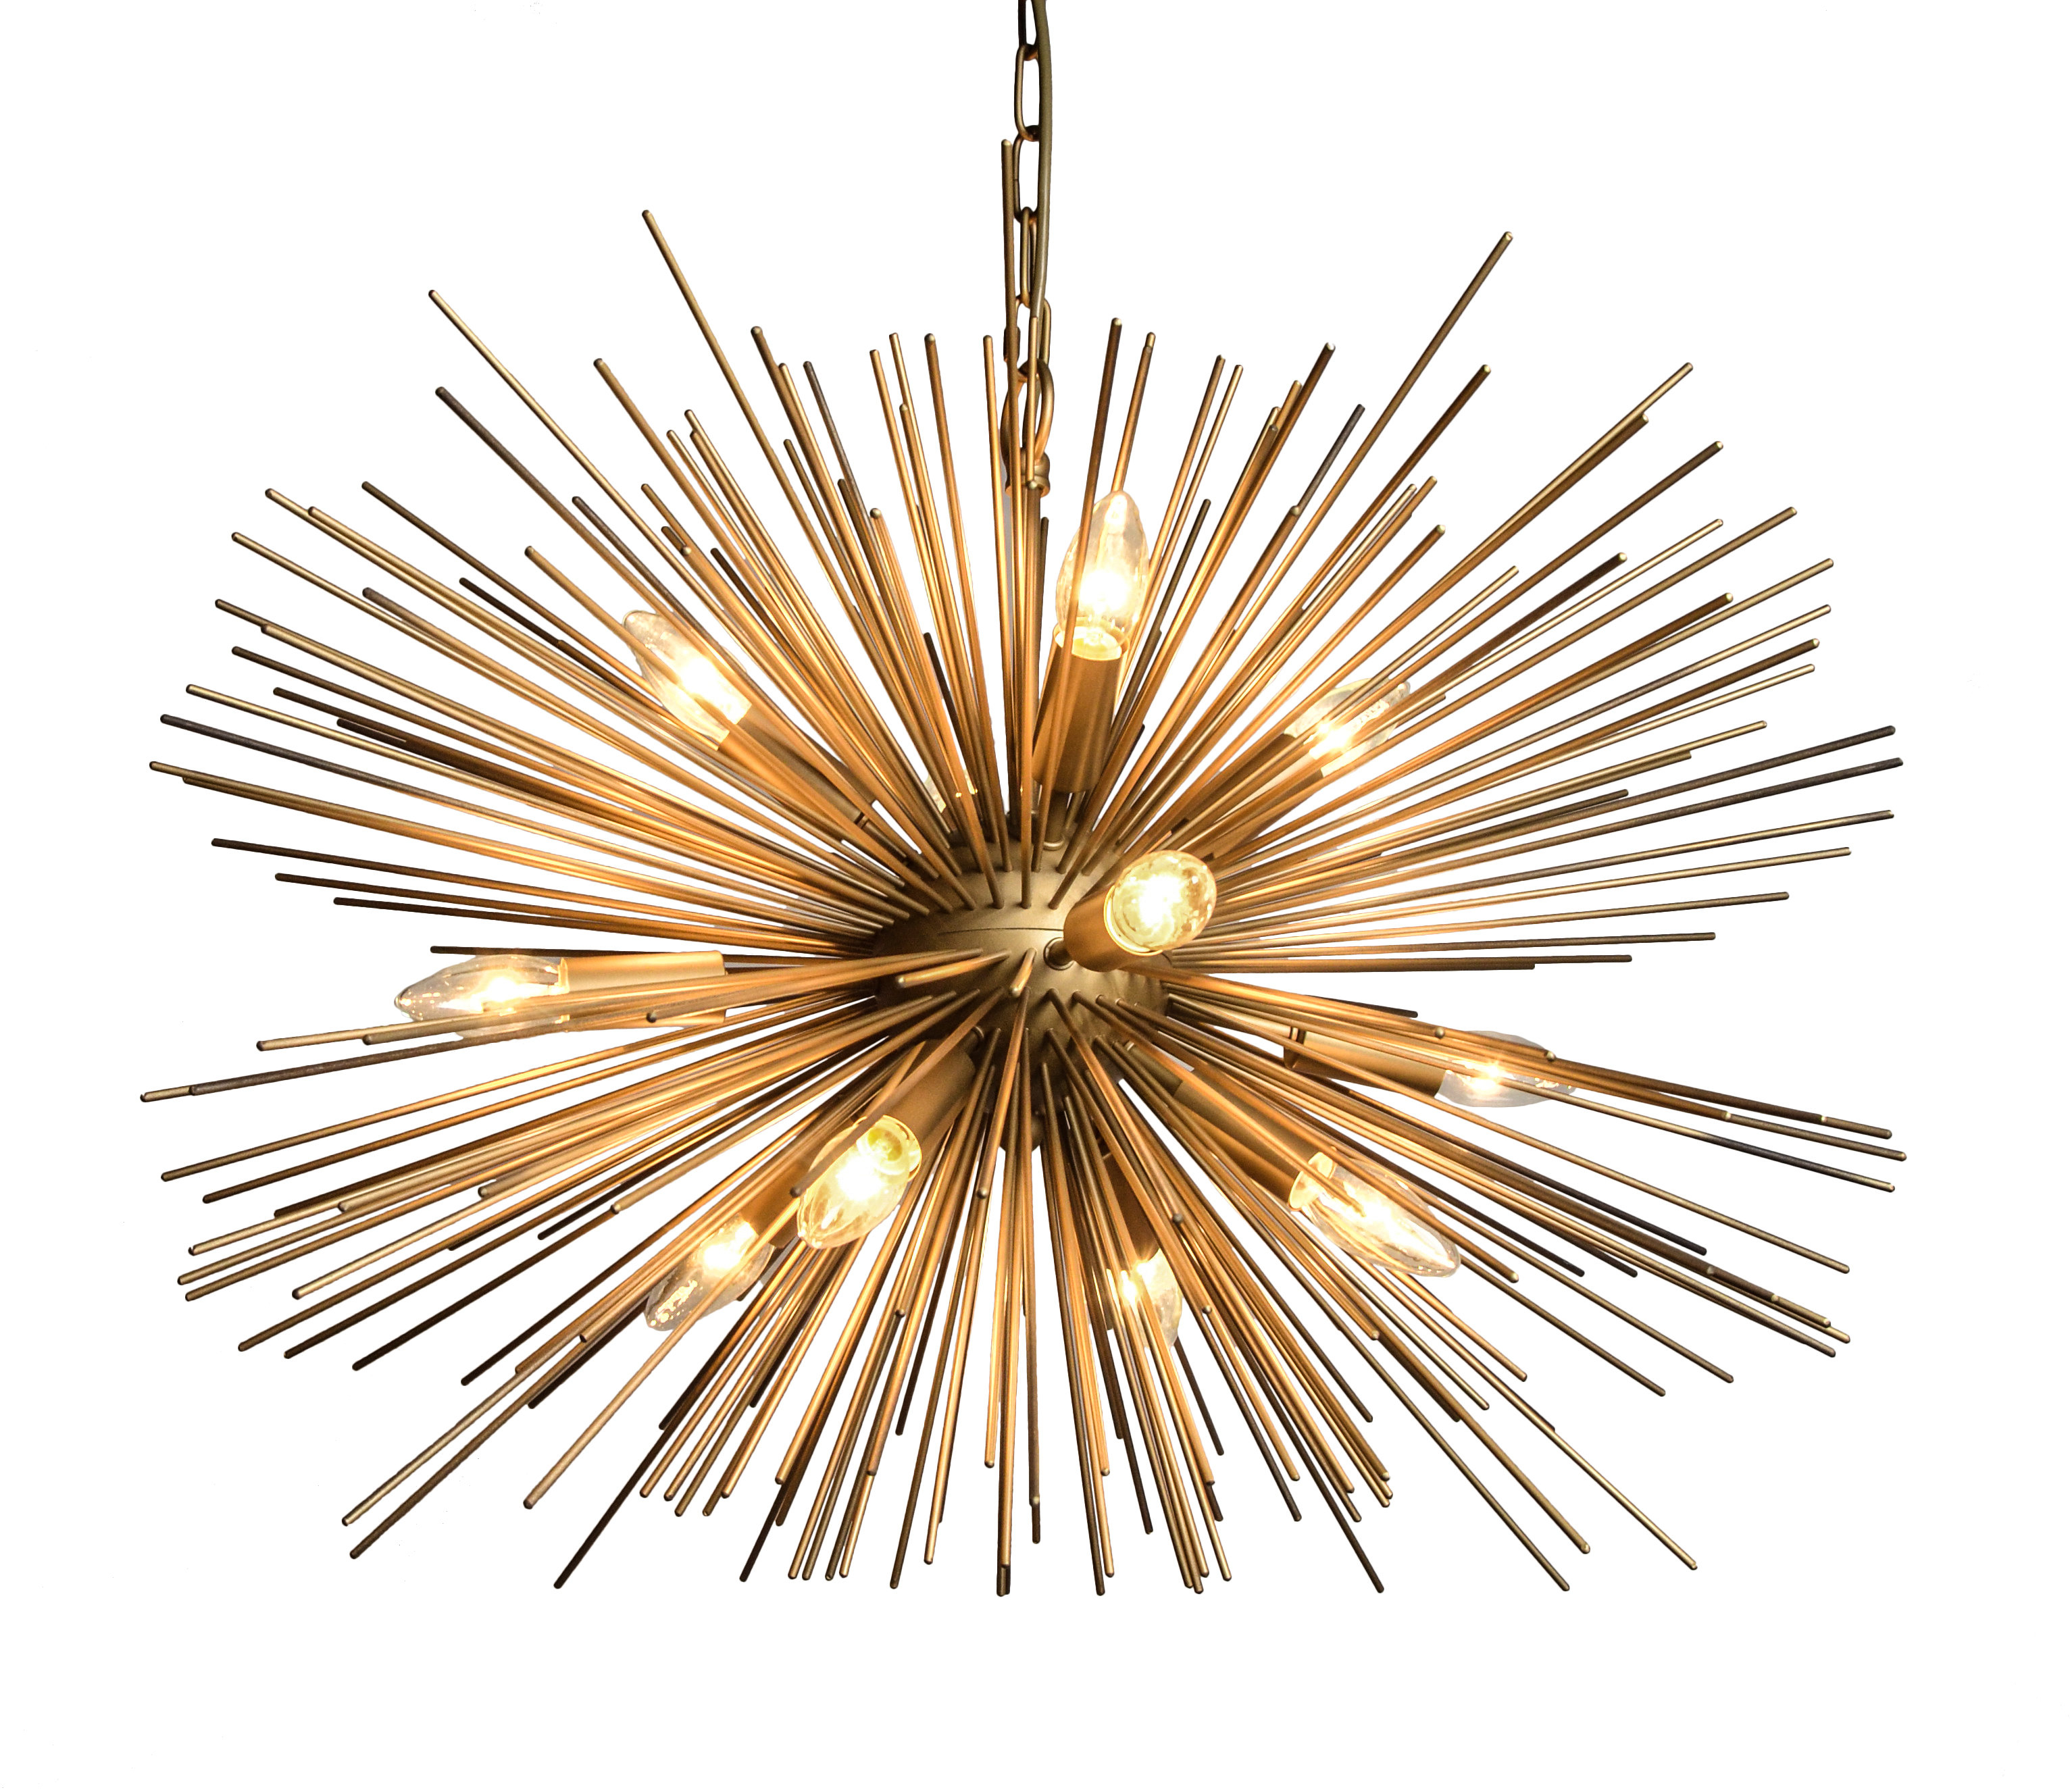 Nelly 12 Light Sputnik Chandeliers With Newest Nelly 12 Light Sputnik Chandelier (Gallery 2 of 20)